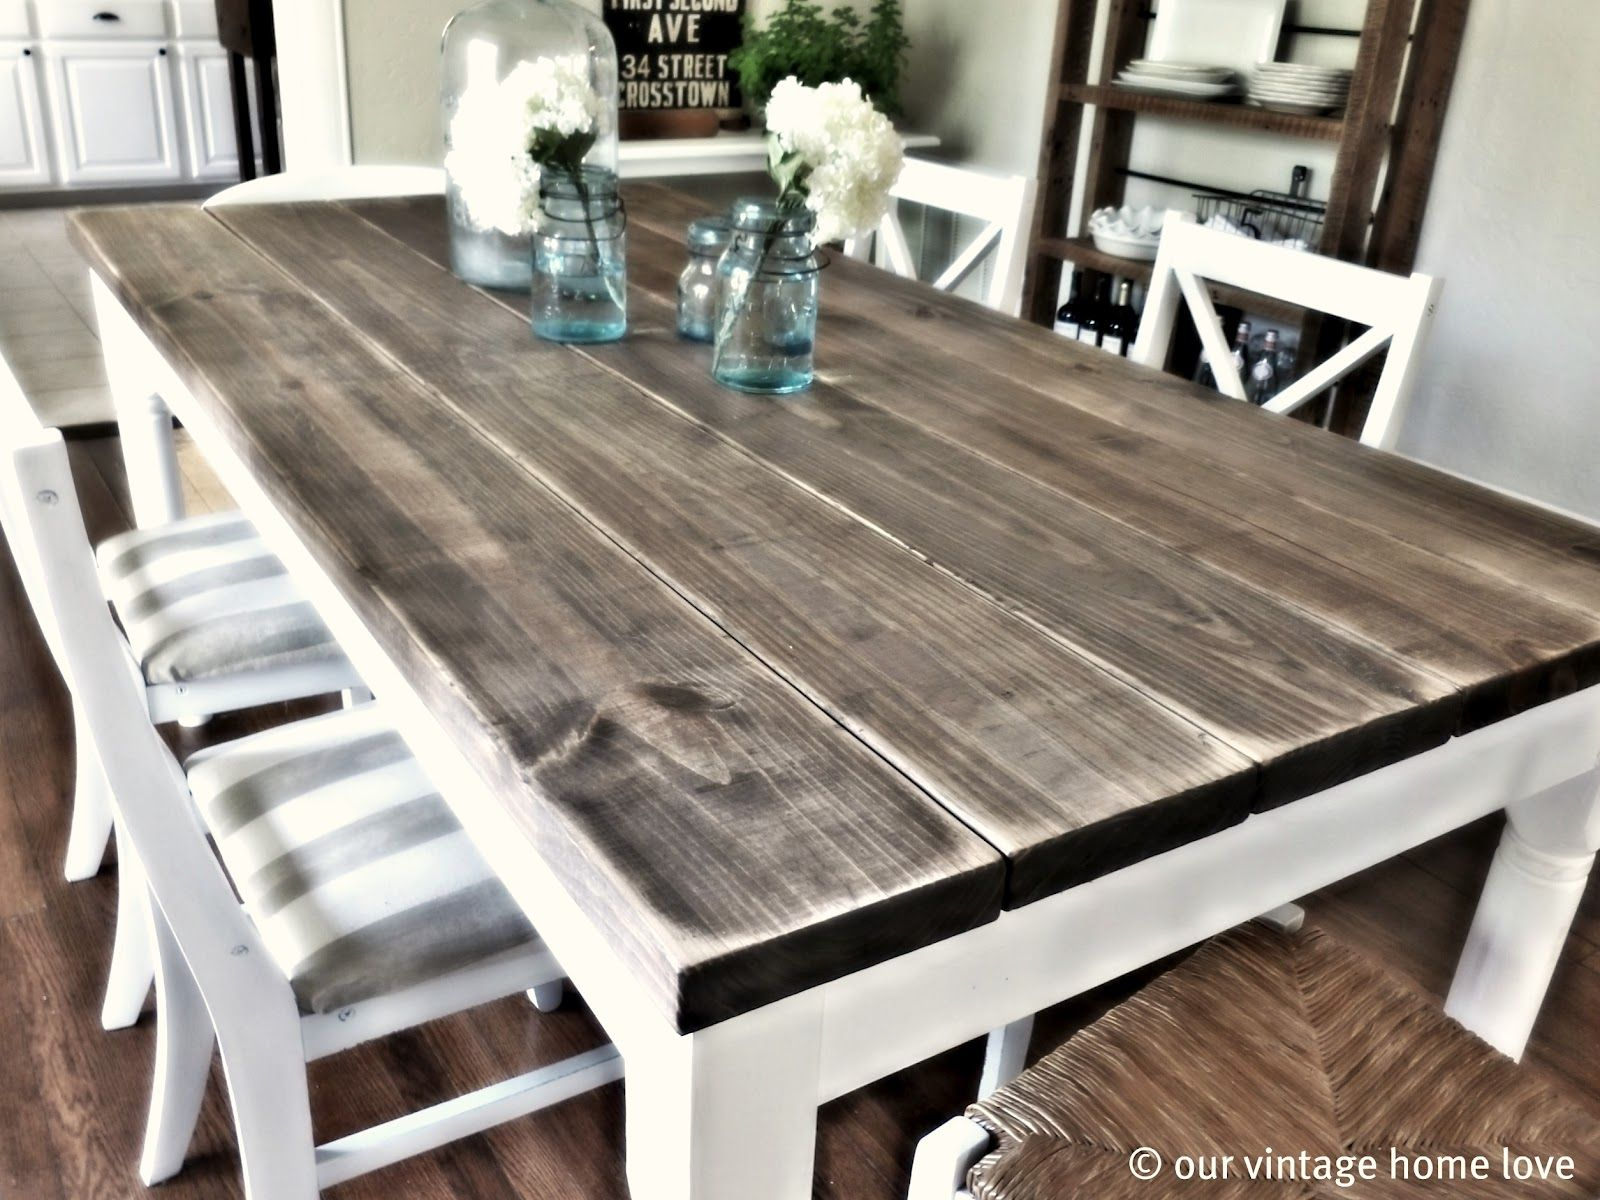 Homemade Dining Room Table Our Vintage Home Love Dining Room Table Tutorial I Want This For .